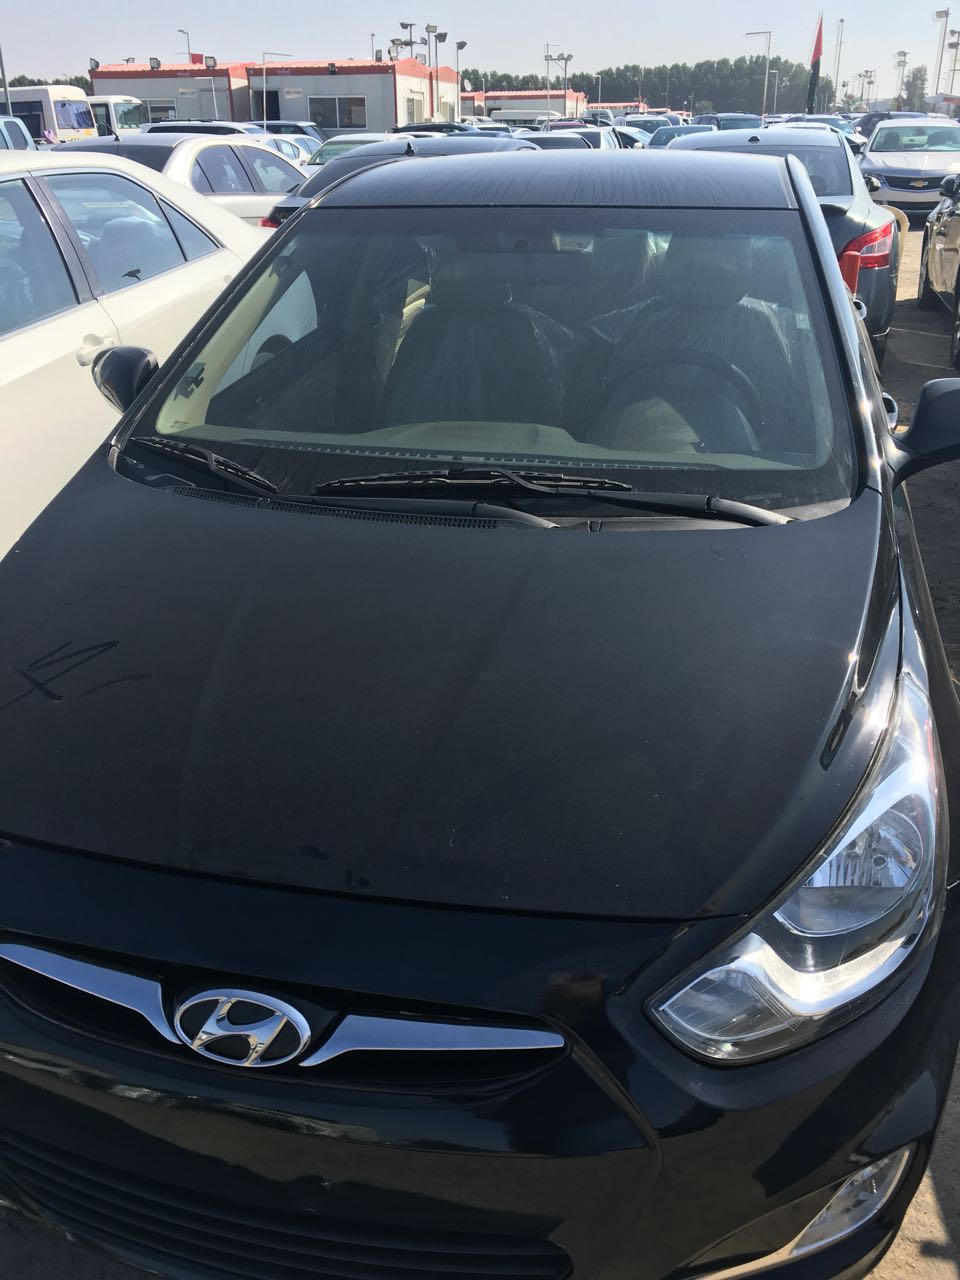 Used hyundai accent 2012 car for sale in dubai 770031 for Hyundai motor finance fax number